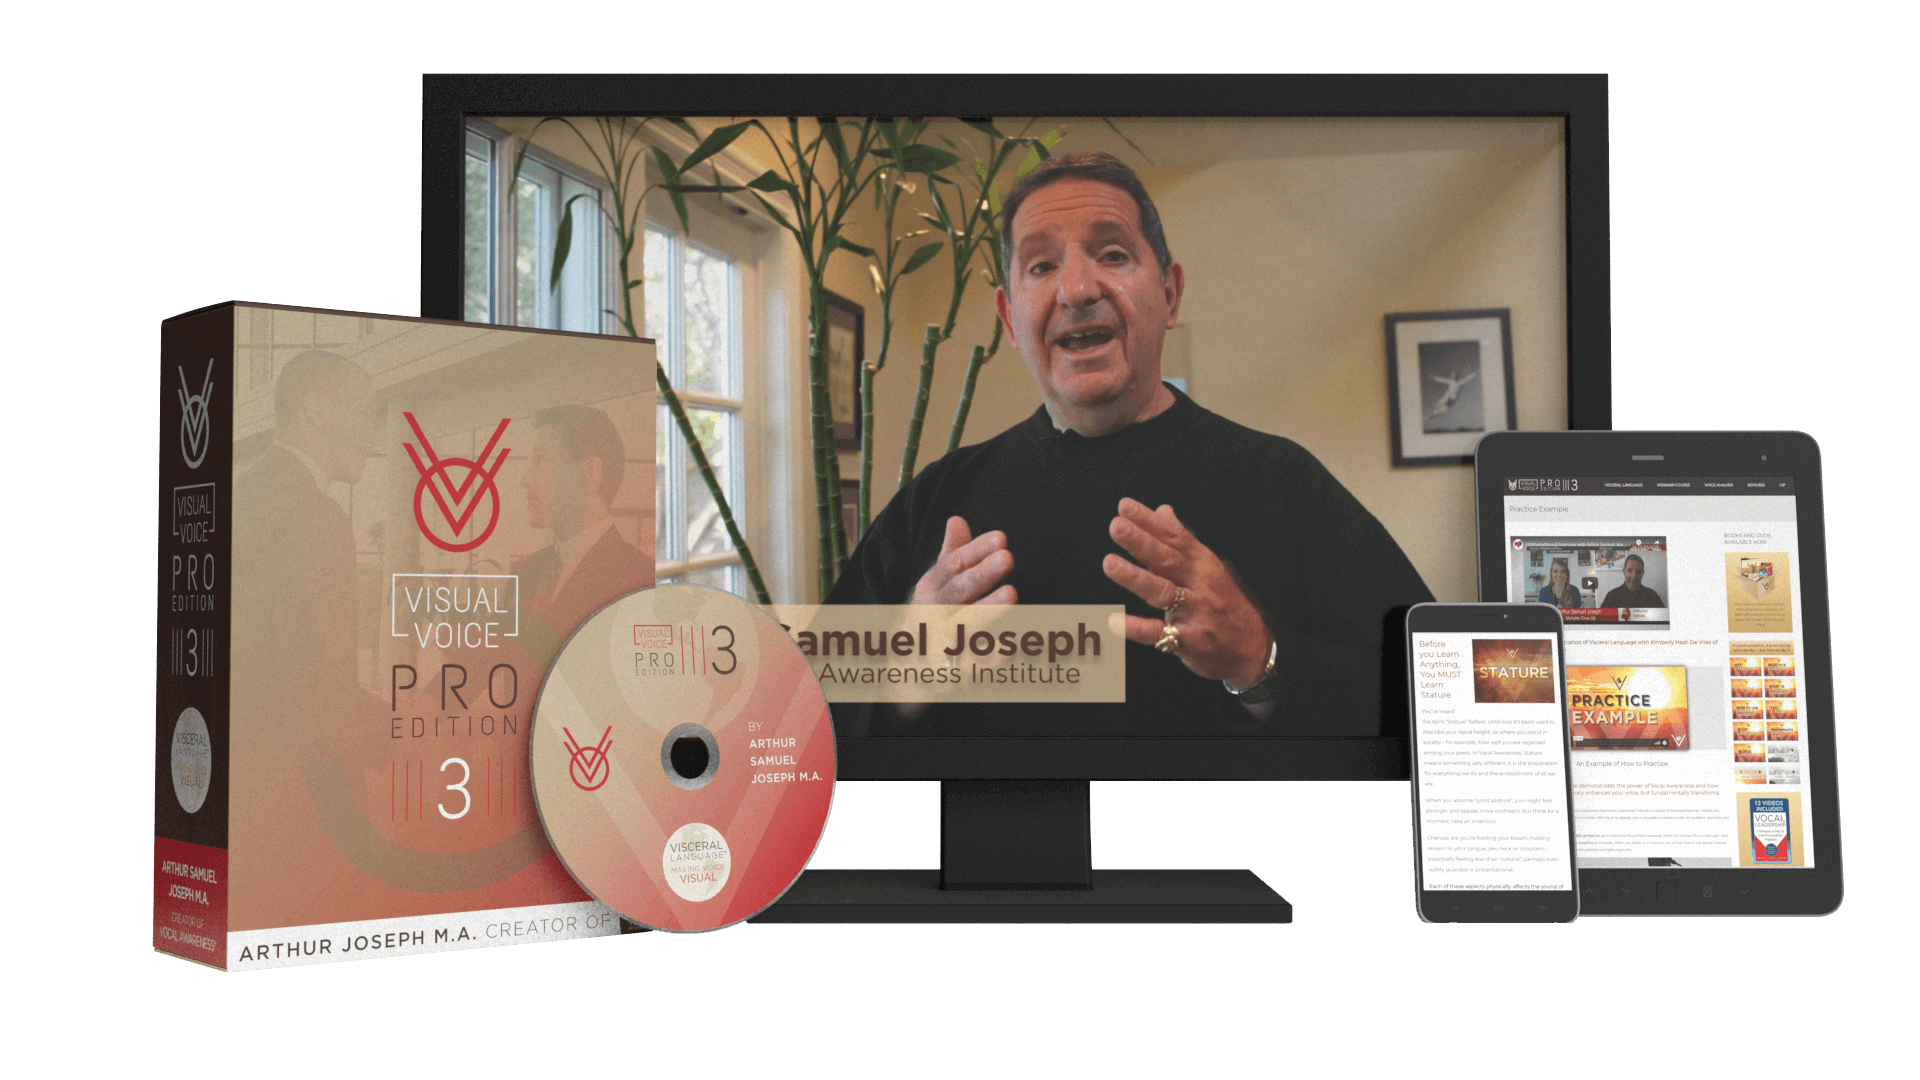 Visual-Voice-Pro-3-Review